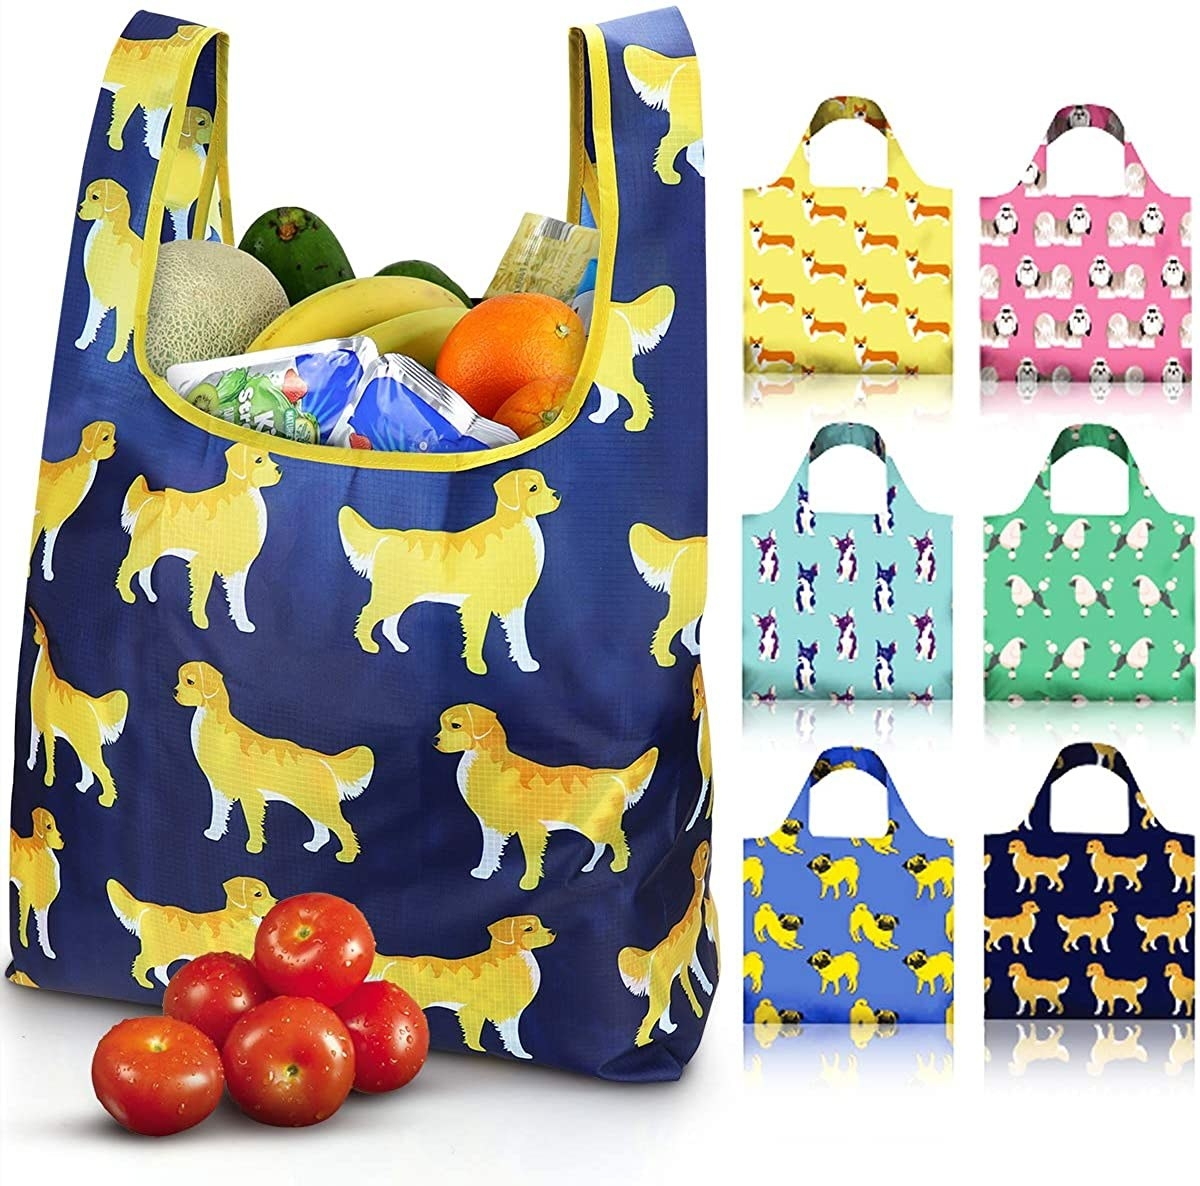 Seven varieties of the shopping bags with golden retrievers, pugs, poodles, corgis, and chihuahuas on them